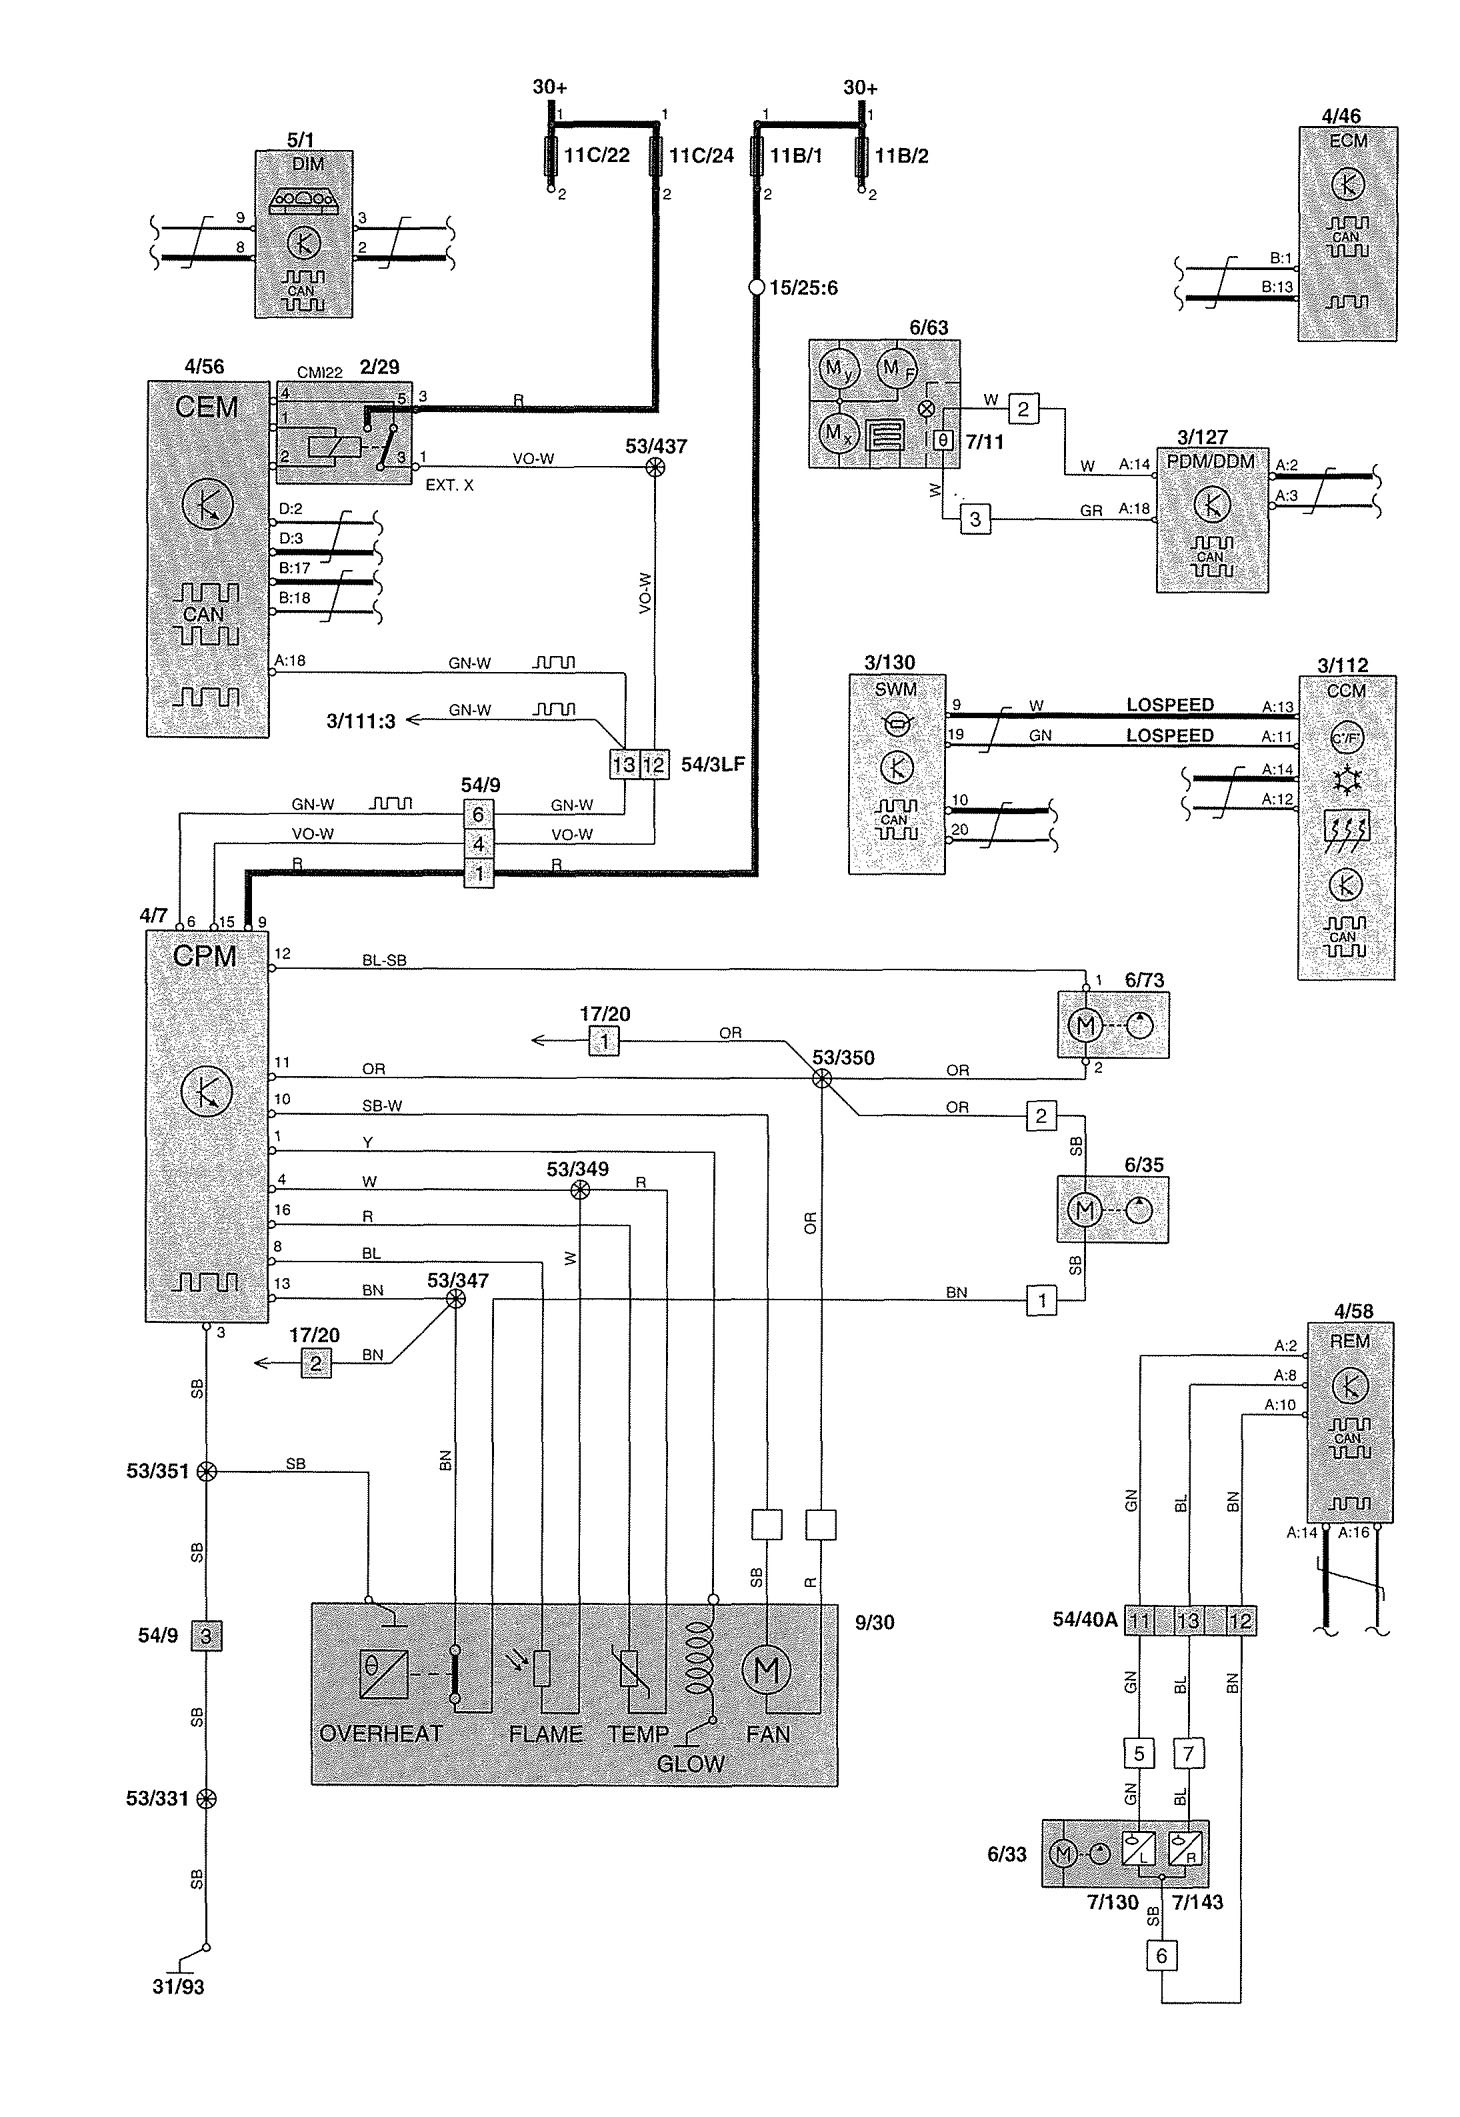 Bmw 740il Heater Wiring Diagram Wiring Diagram For Free